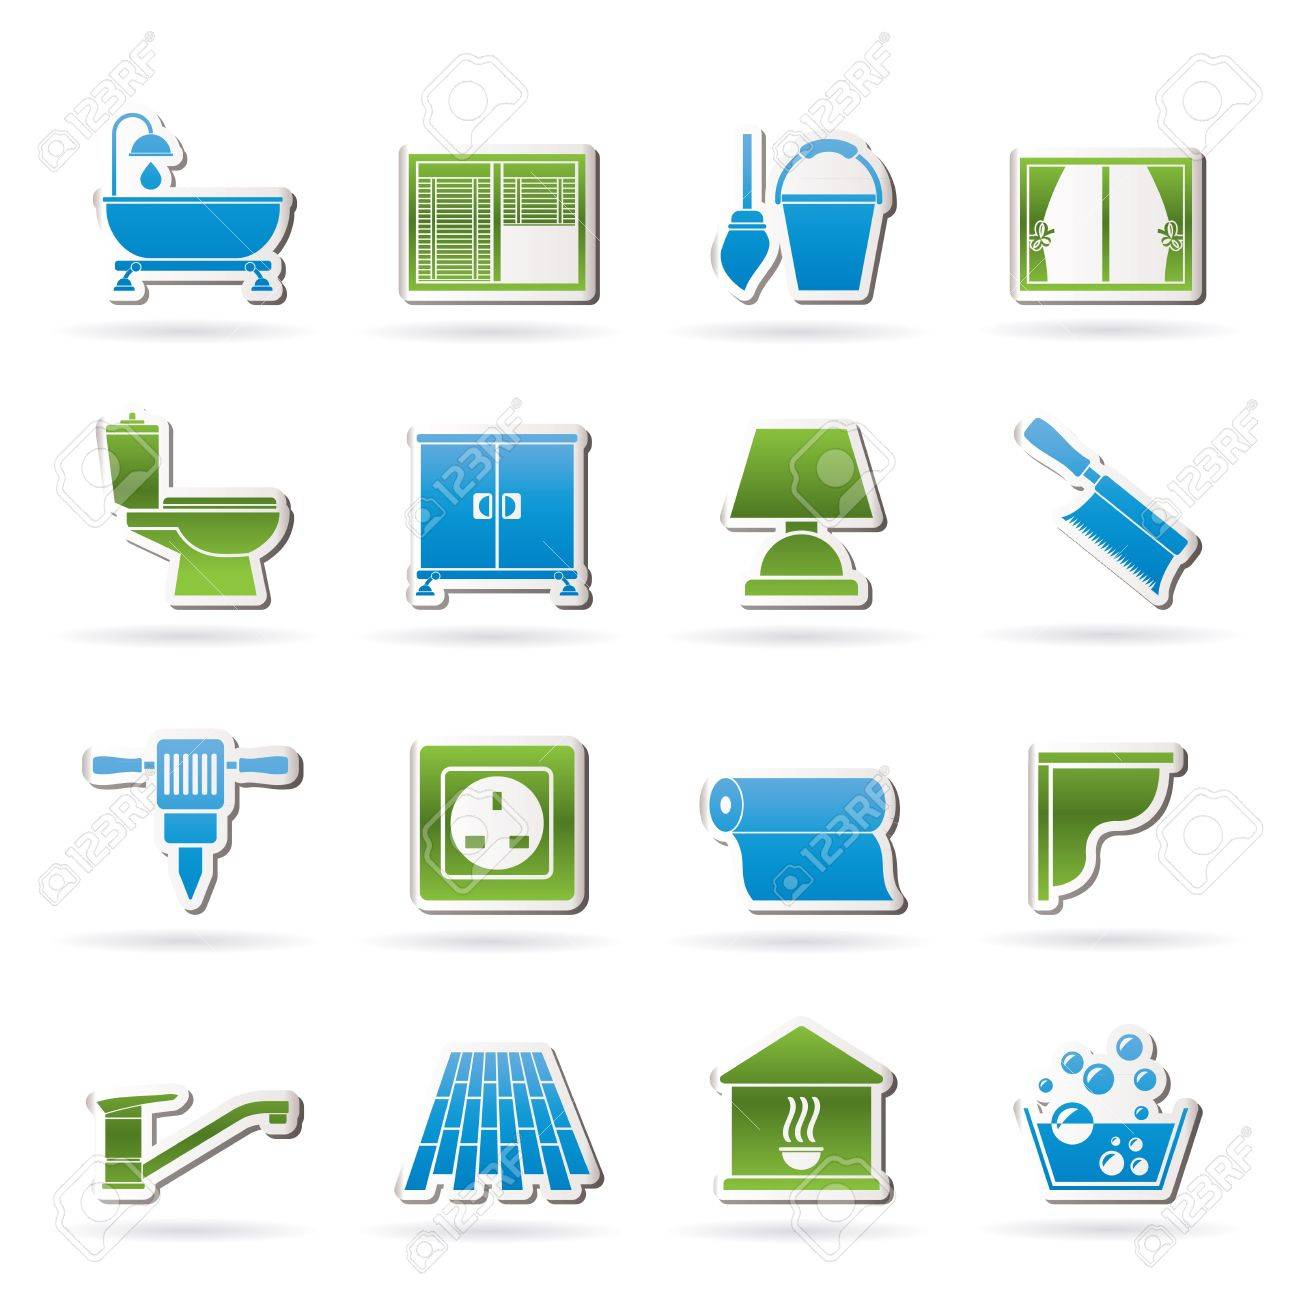 Construction and building equipment Icons - vector icon set 2 Stock Vector - 14771334